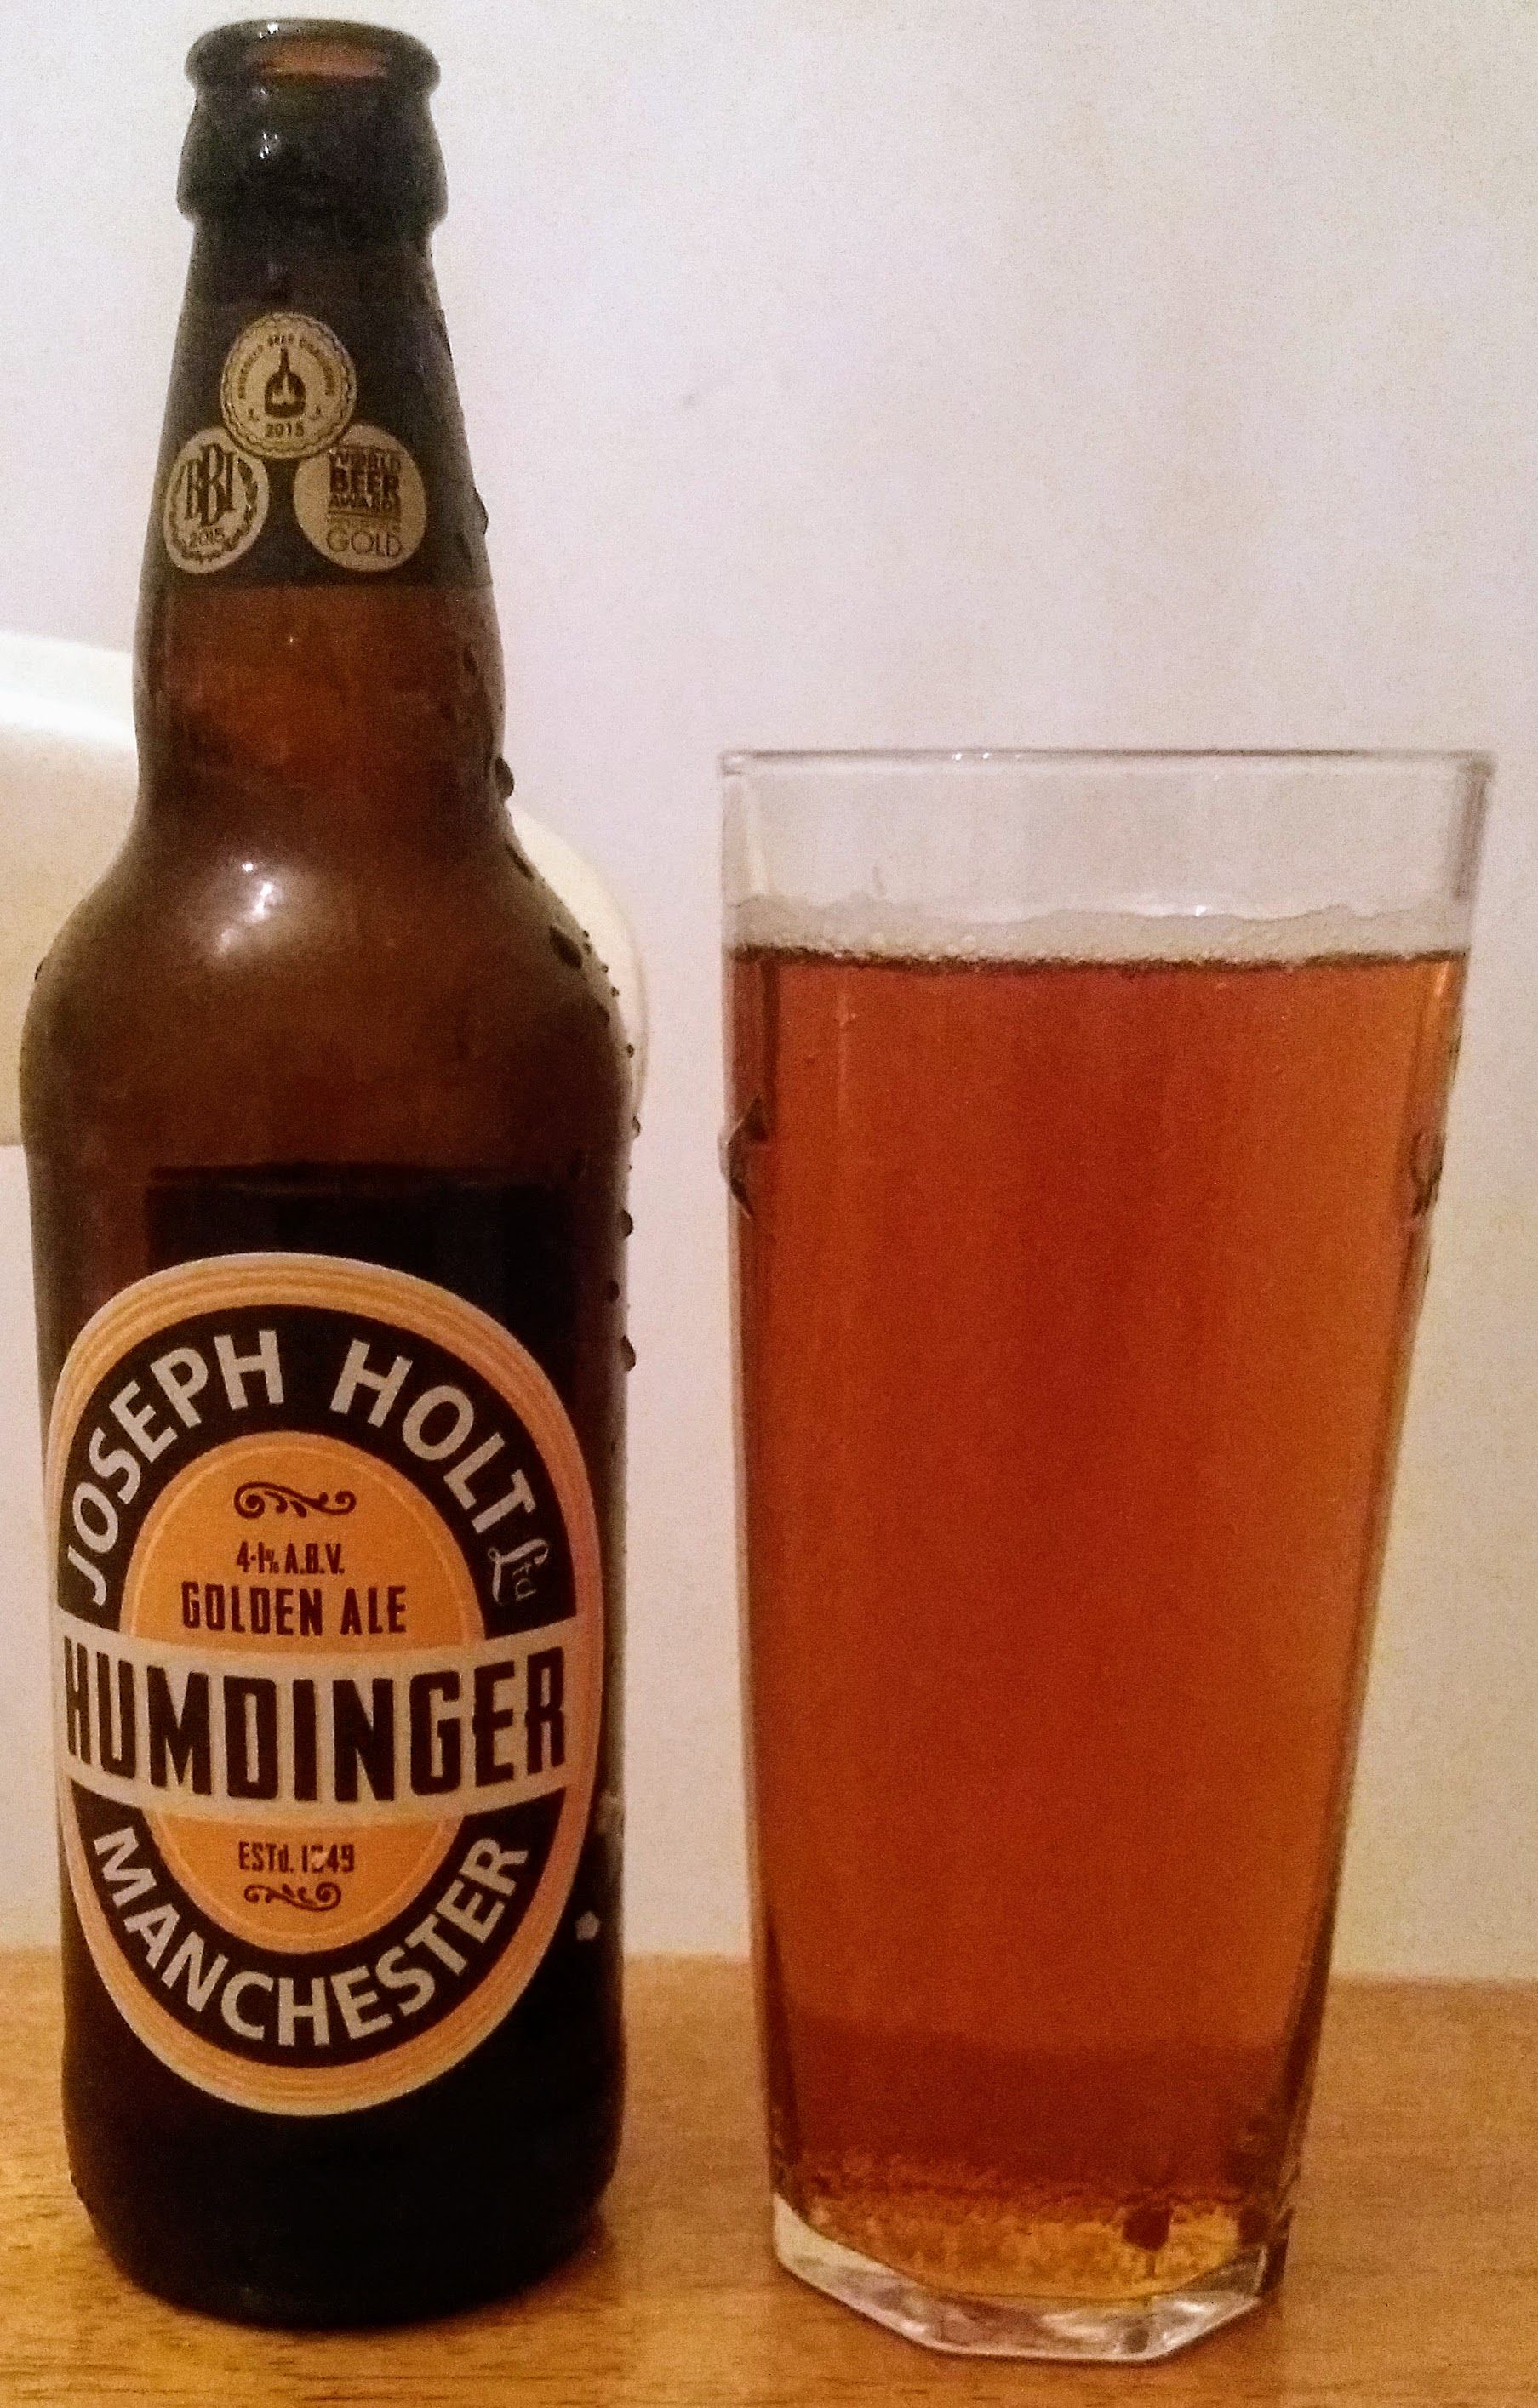 Humdinger From Joseph Holt I M Not A Fan Of Honey Beers But This One A Strong Bitter Backbone To Balance The Sweetness The Resul Beer Brands Beer Beer Label